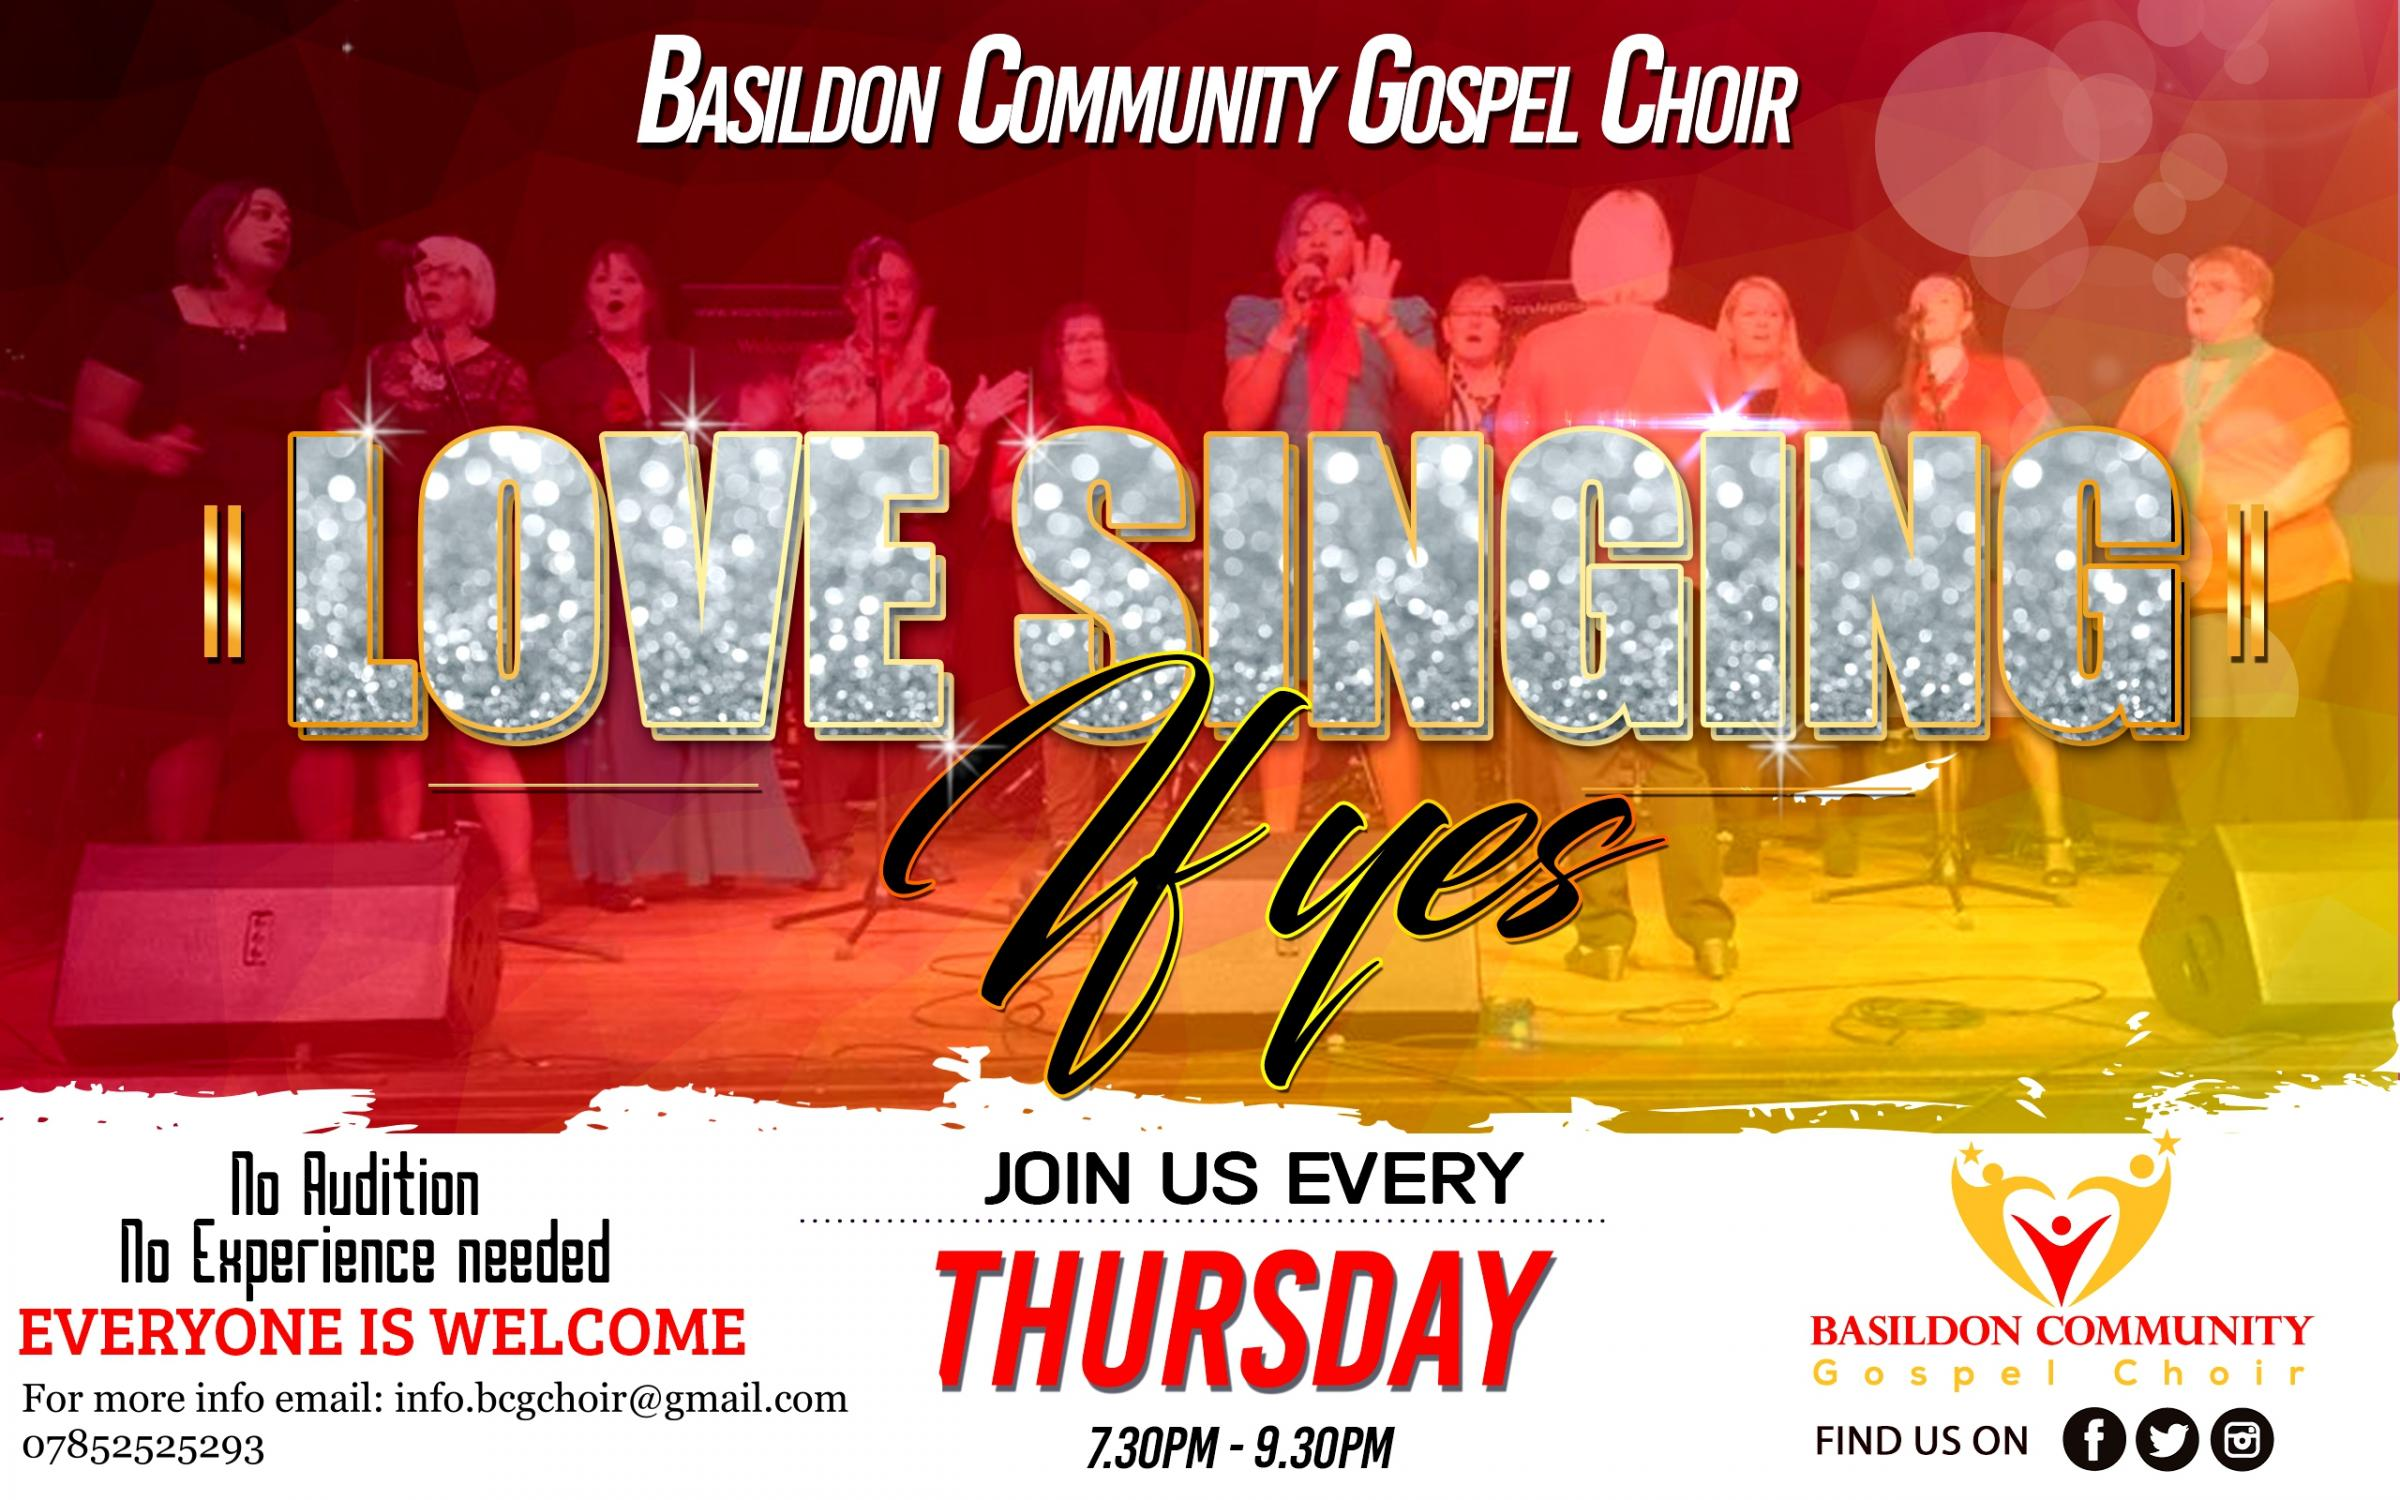 Basildon Community Gospel